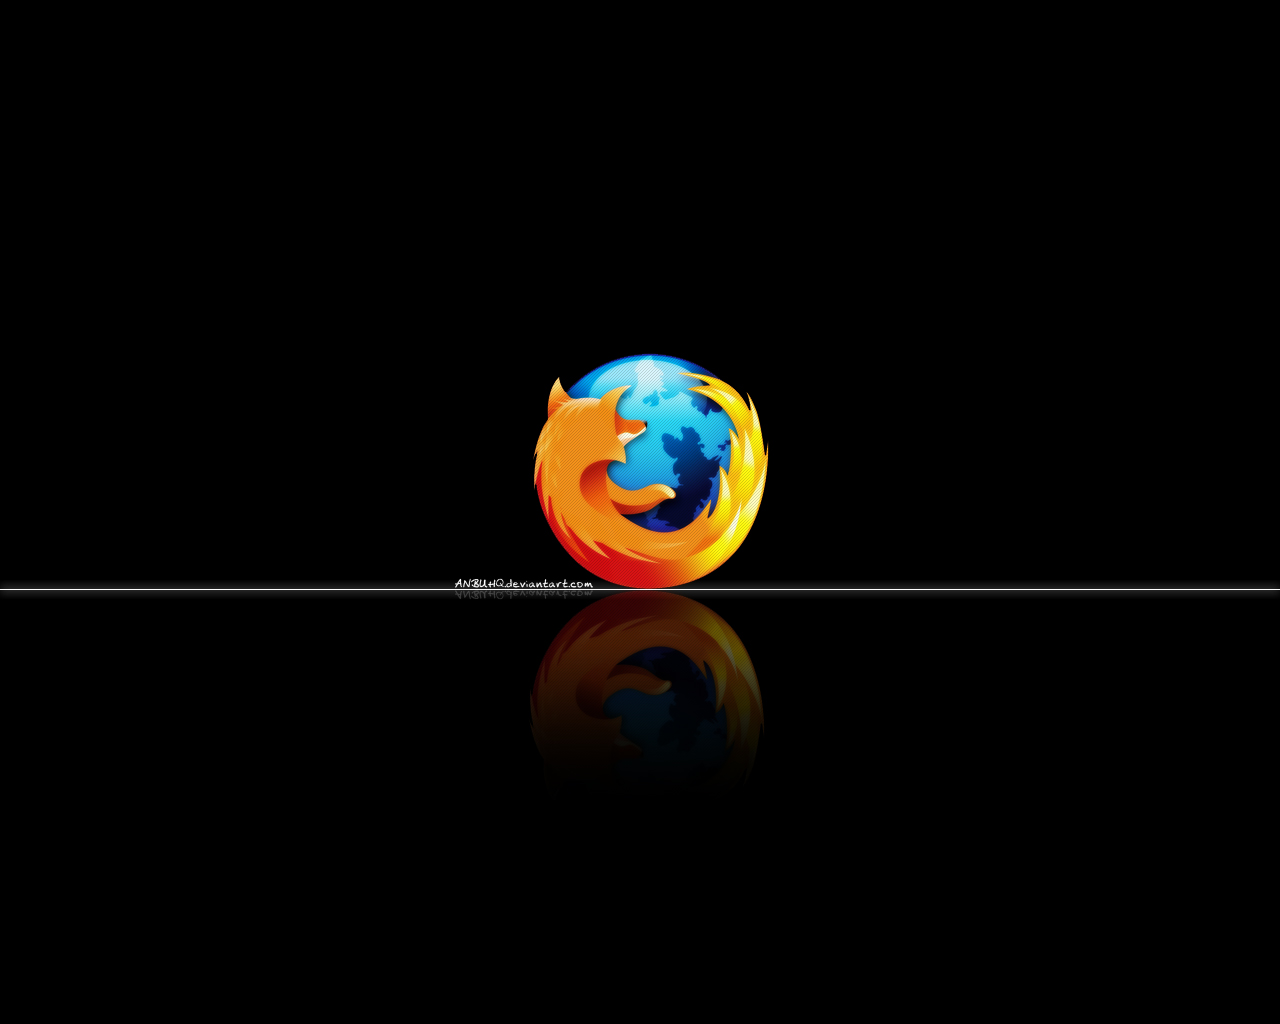 firefox awesome wallpapers